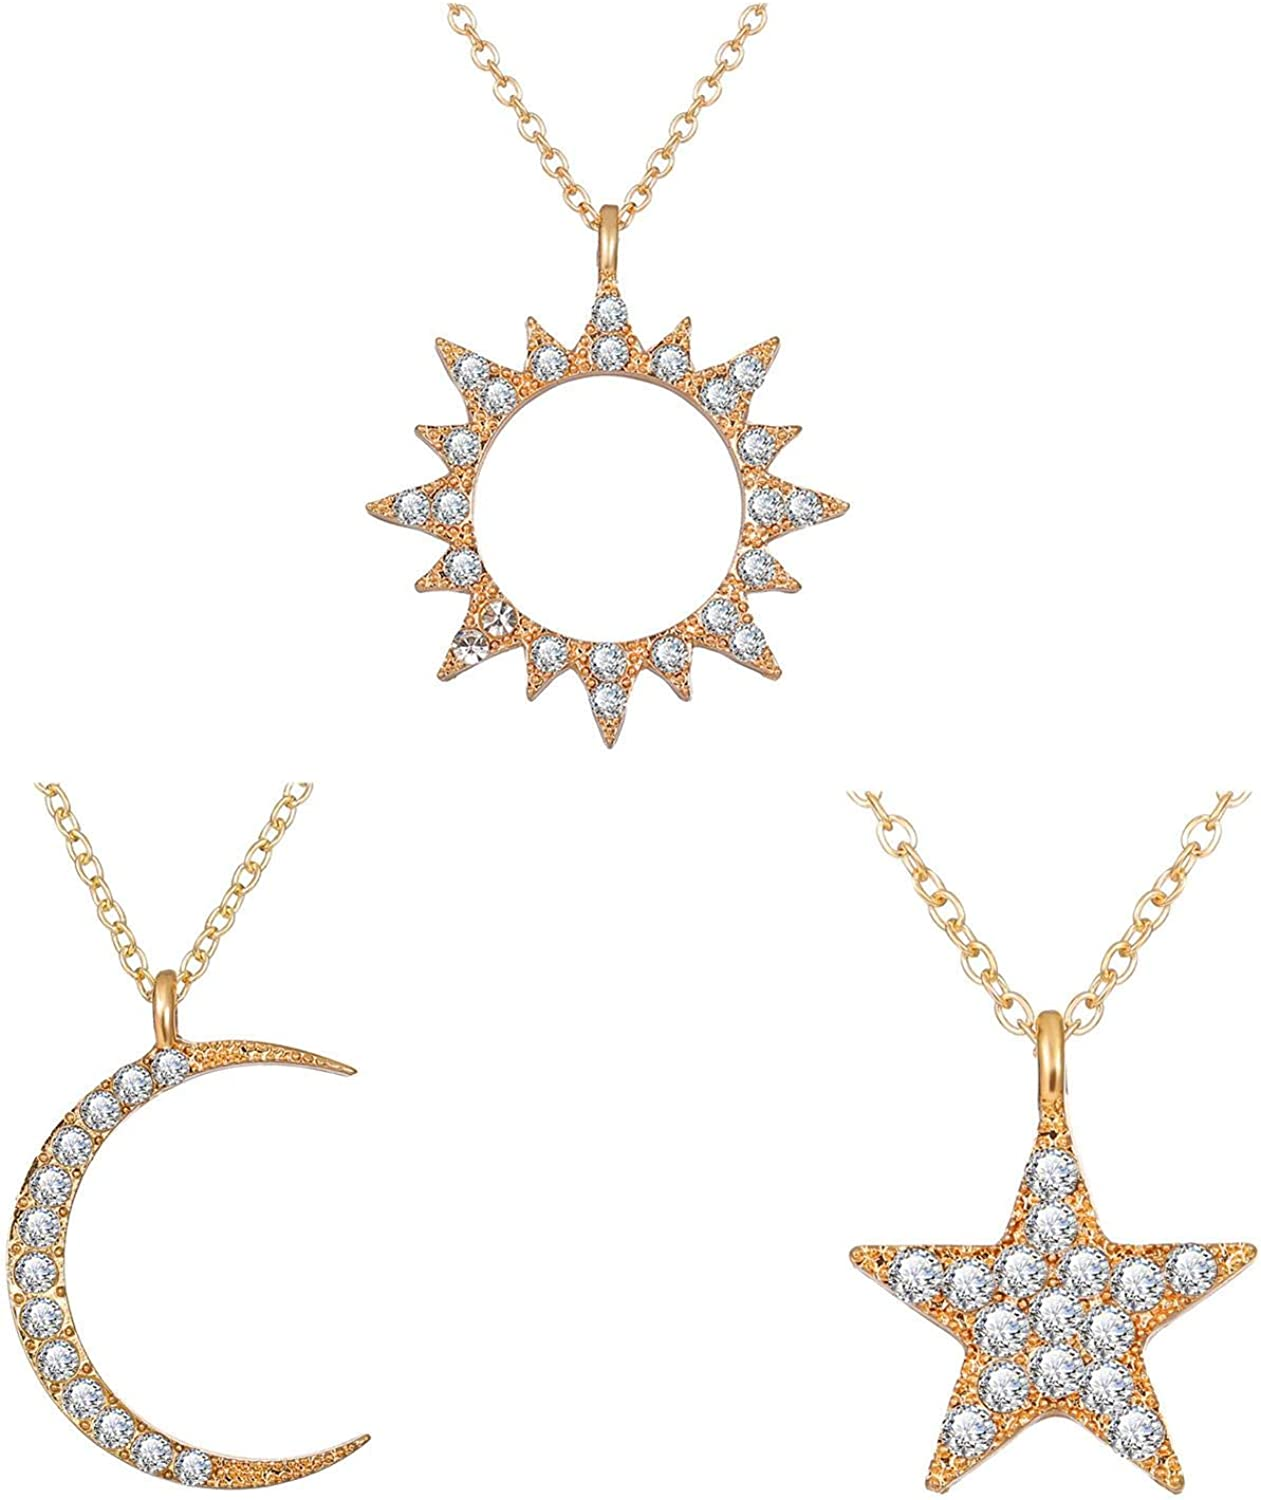 Crystal Sun Moon Star Pendant Necklaces Gold Color Bling Sun Moon Chain Necklace for Women Girl Wedding Accessories Jewelry